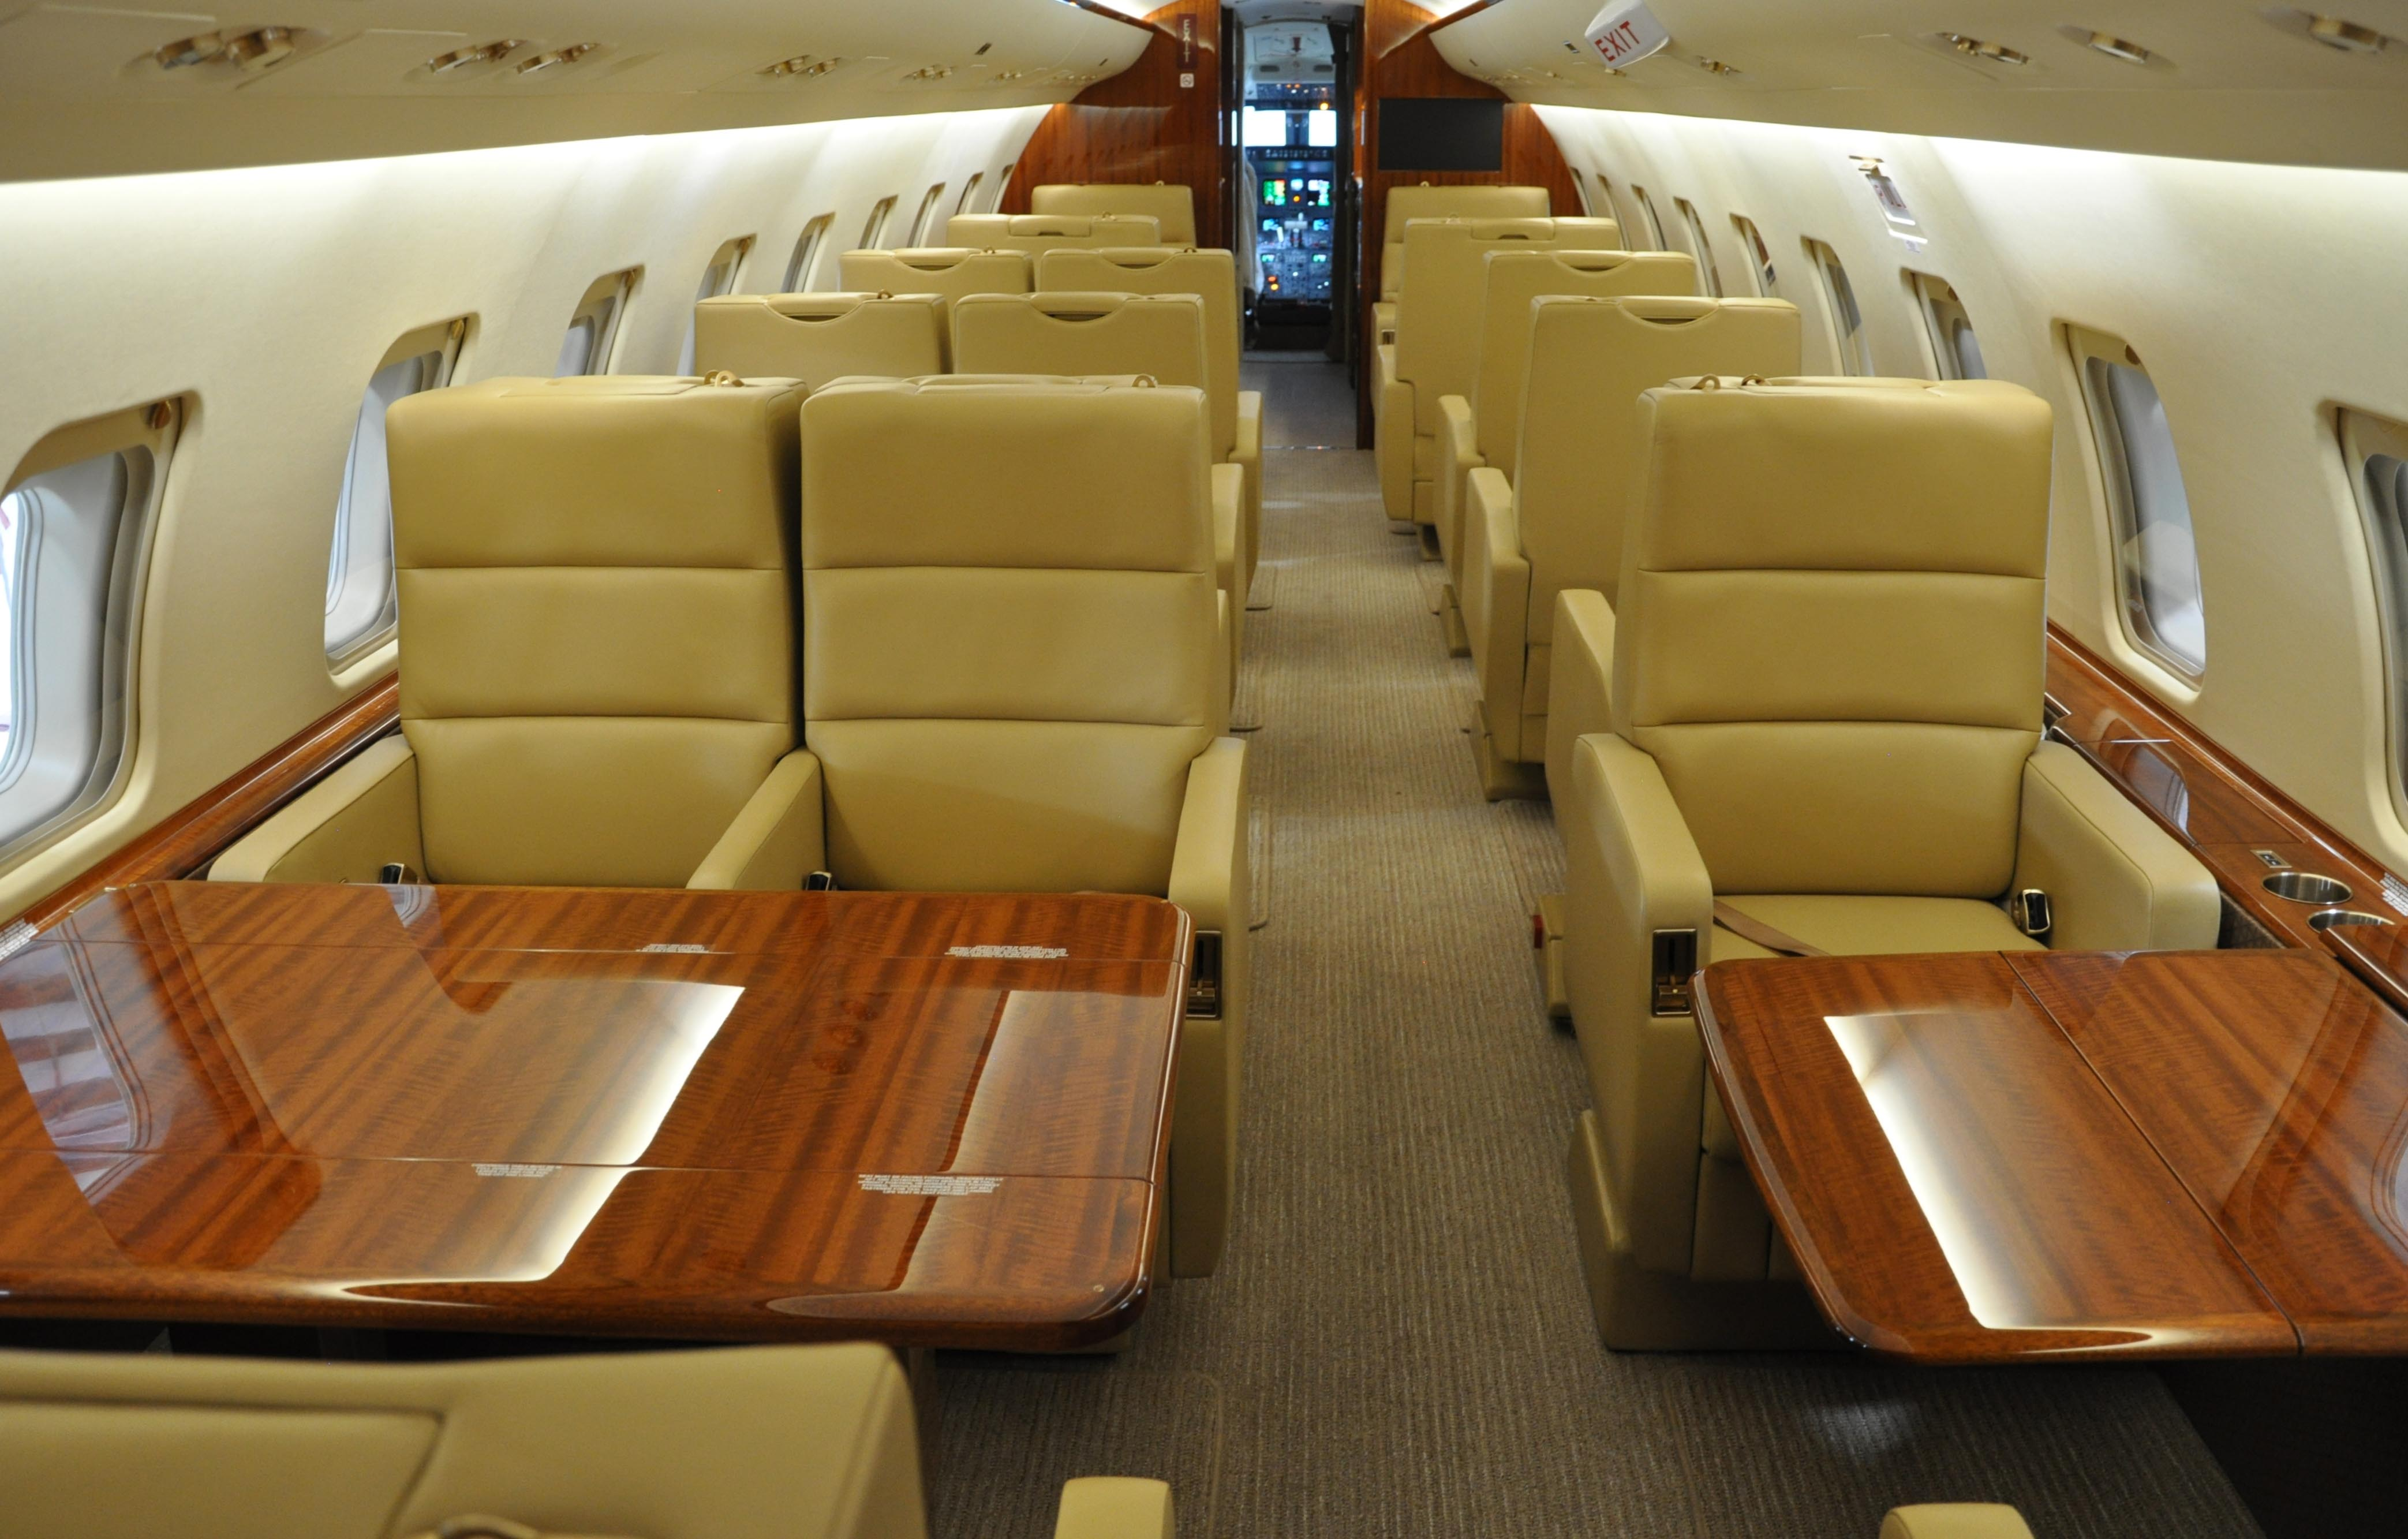 Photo of aircraft cabin.